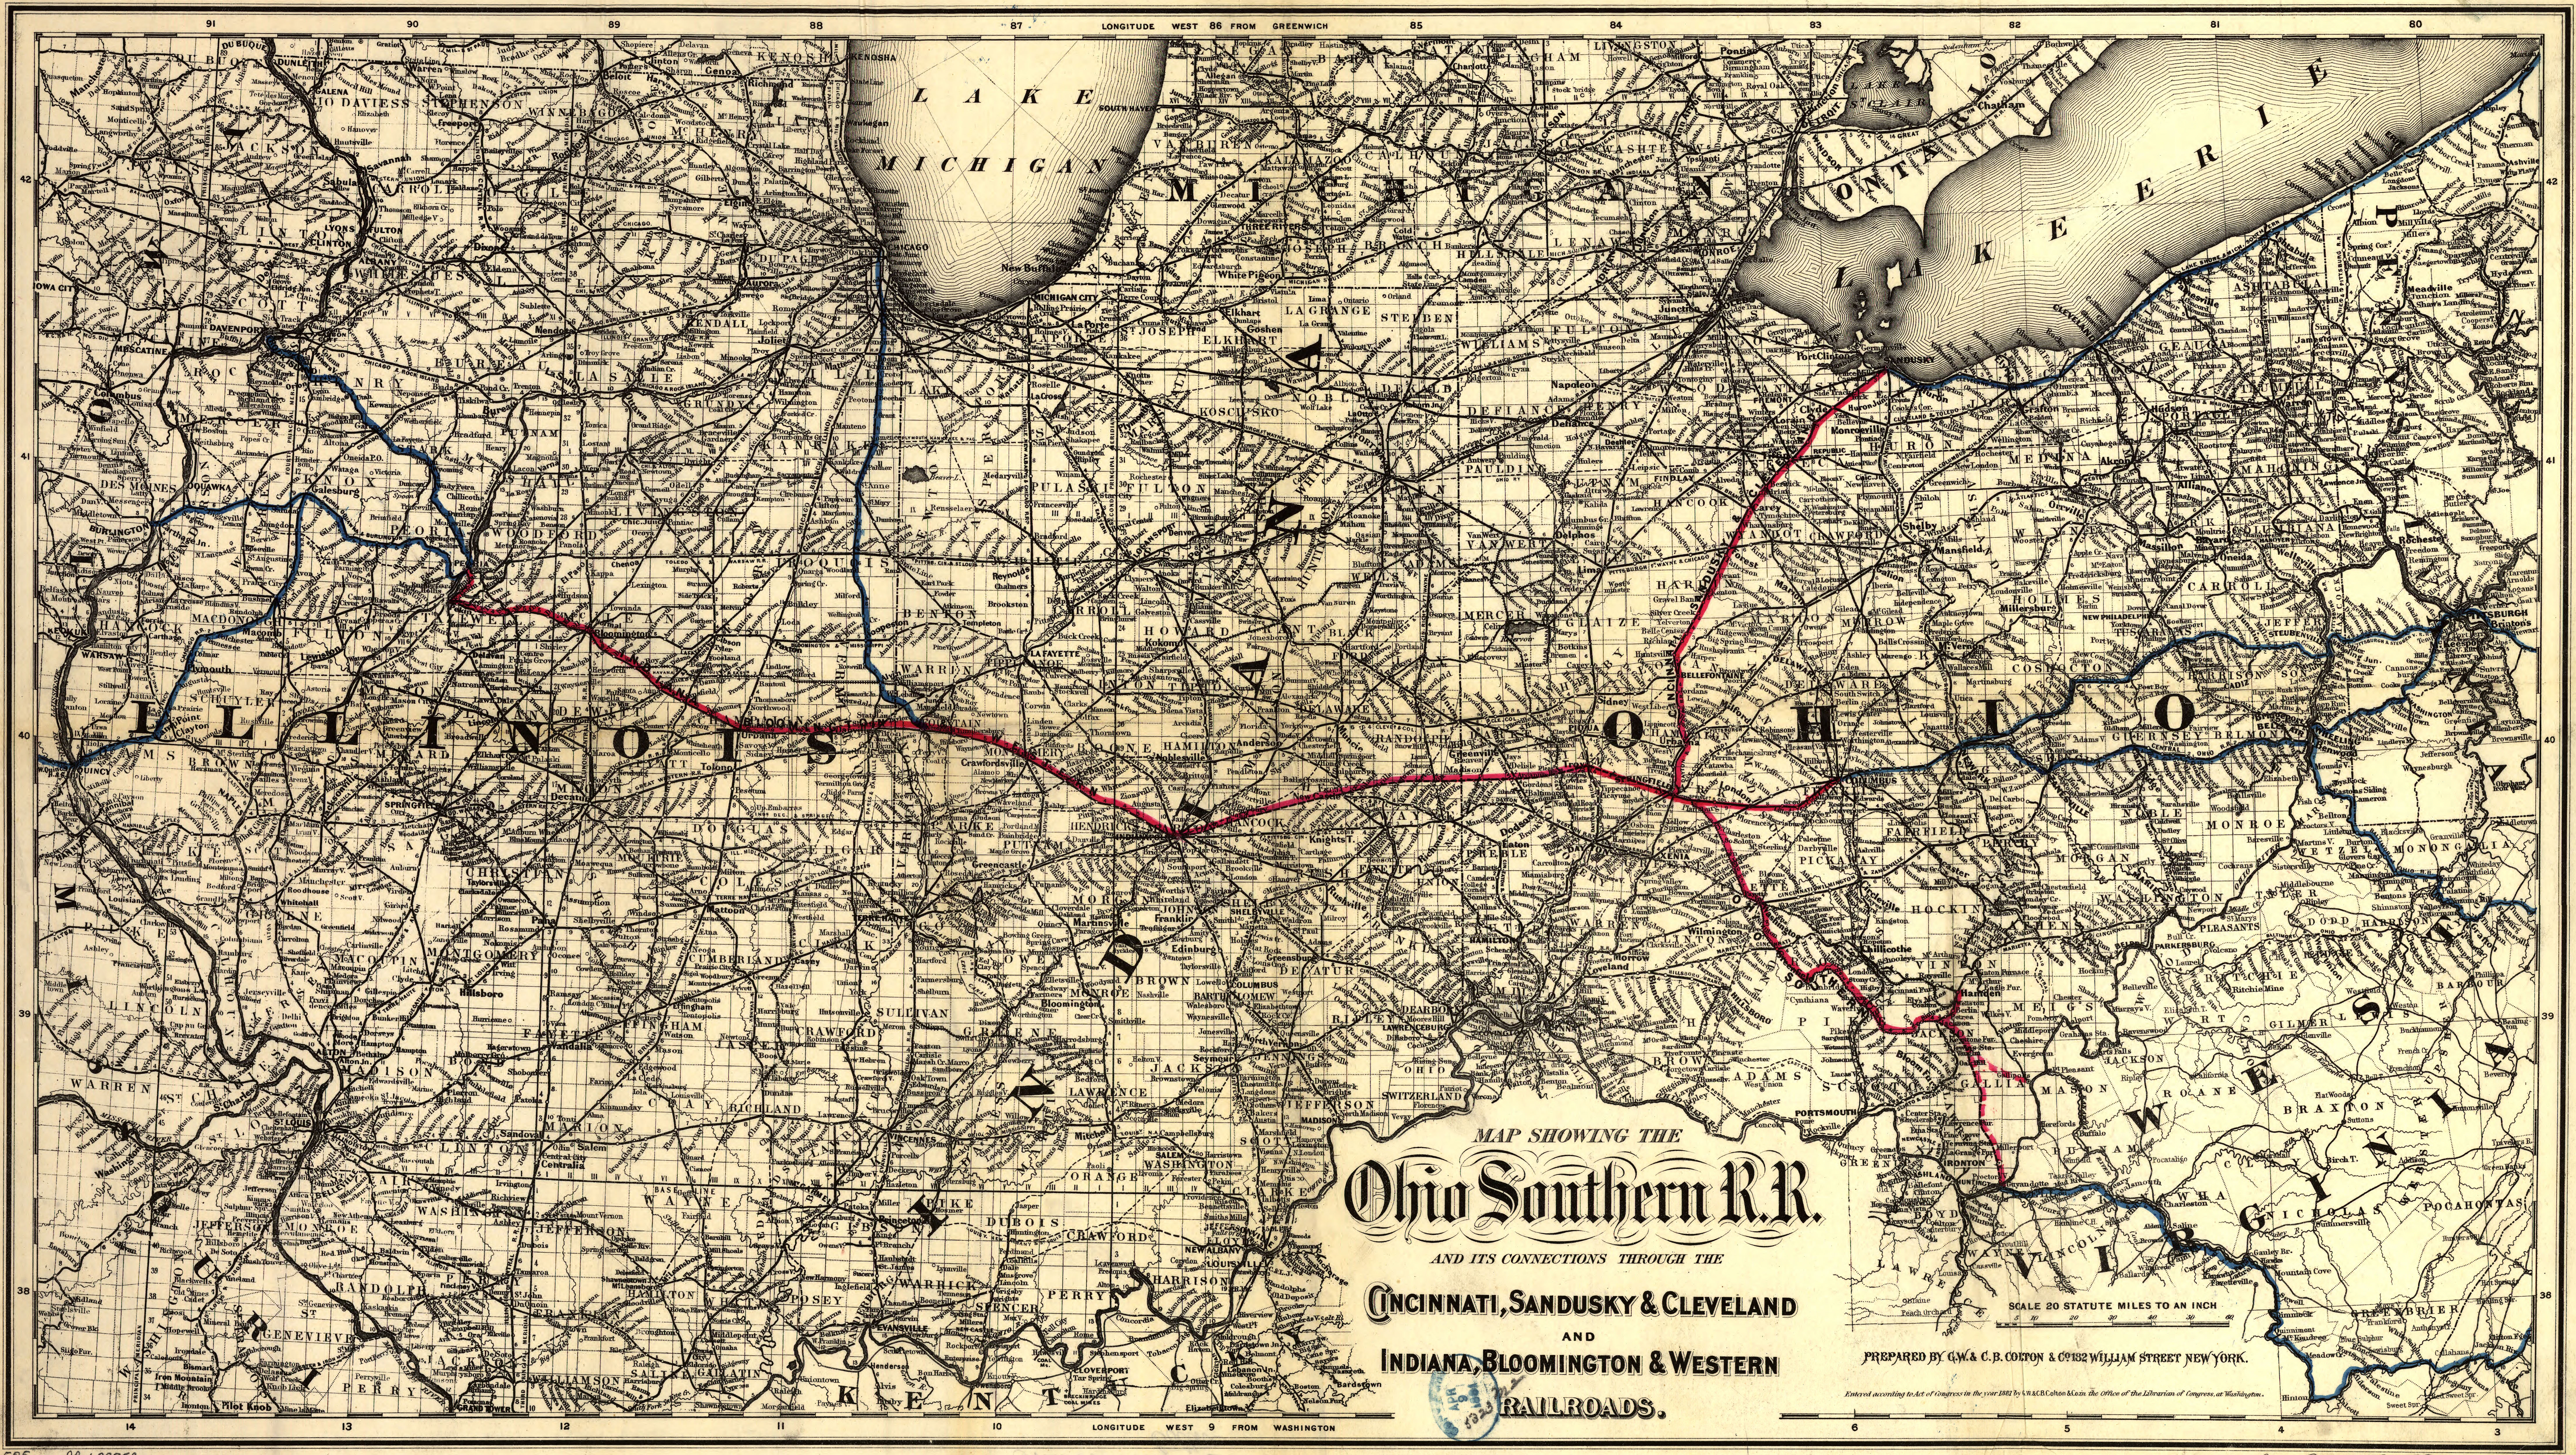 Maps of the Ohio Southern Railroad 1881